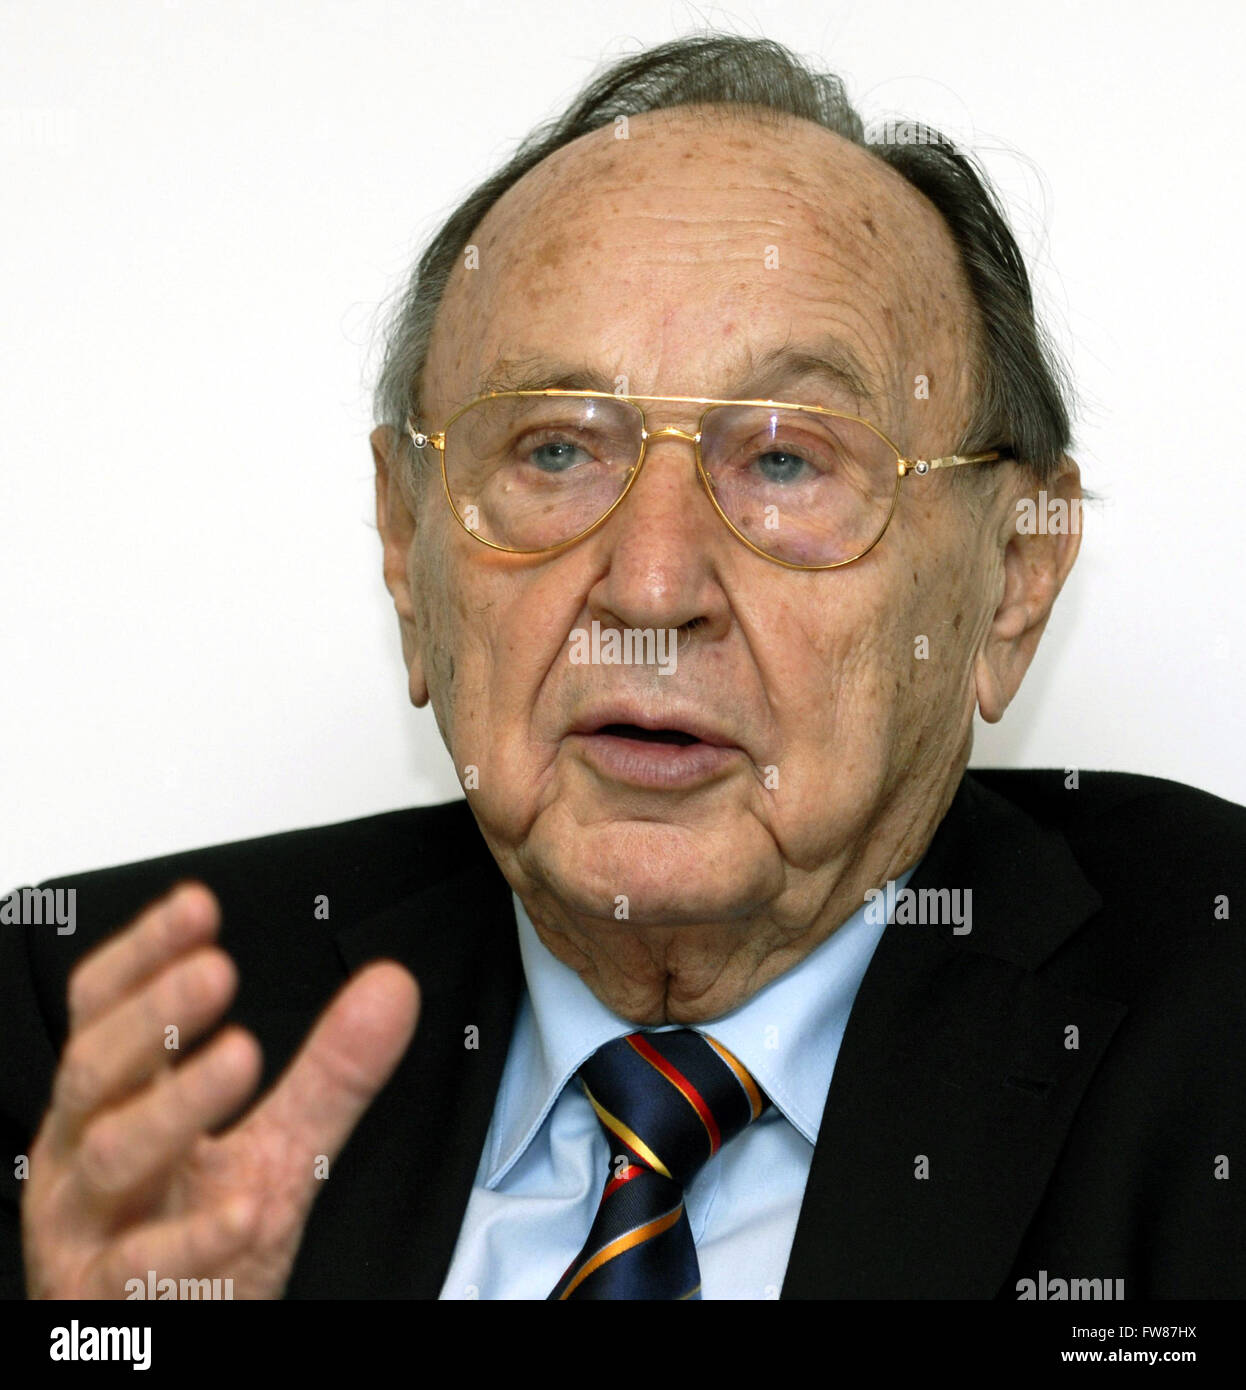 Former foreign minister Hans-Dietrich Genscher during a press conference in Berlin on 17 January 2007. Stock Photo